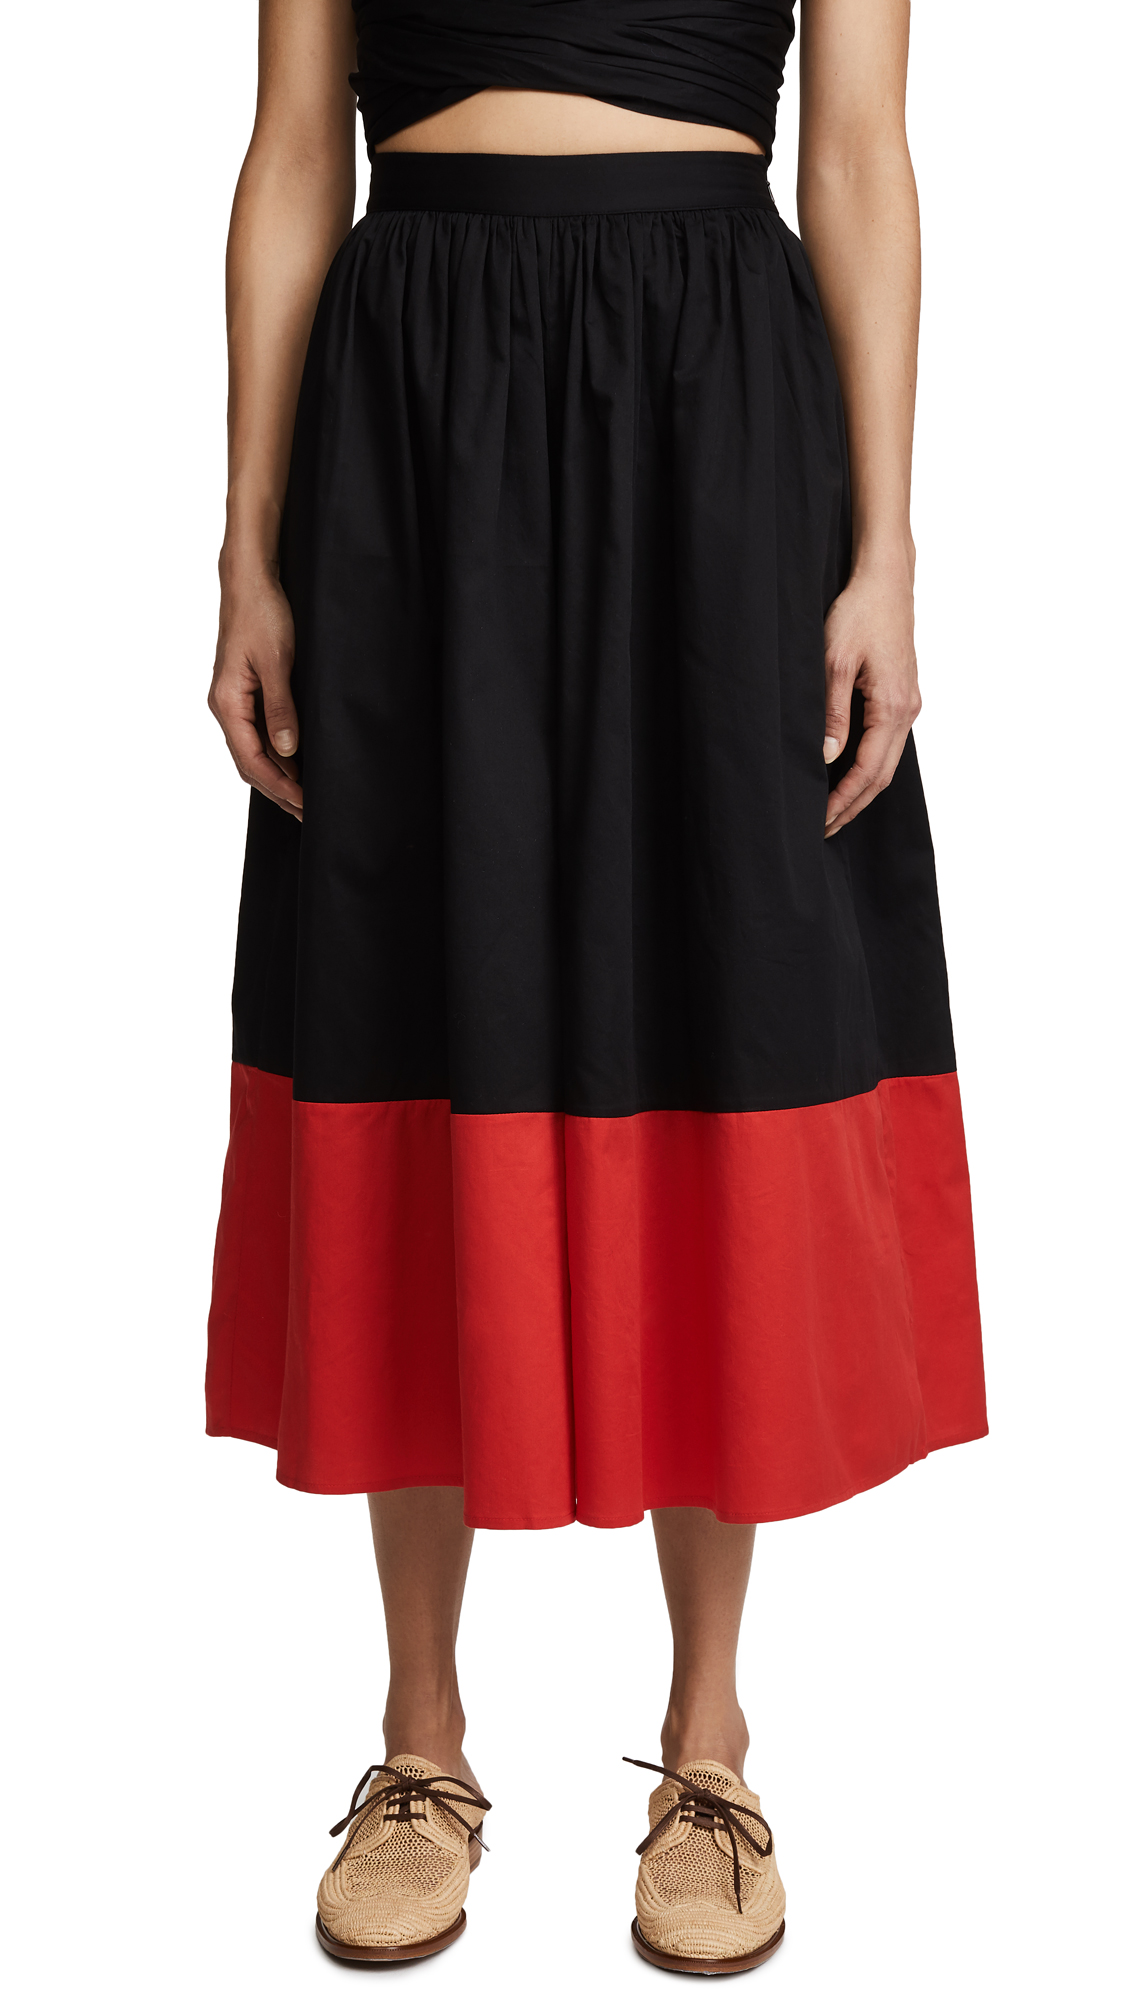 Mara Hoffman Marni Pants - Black/Red